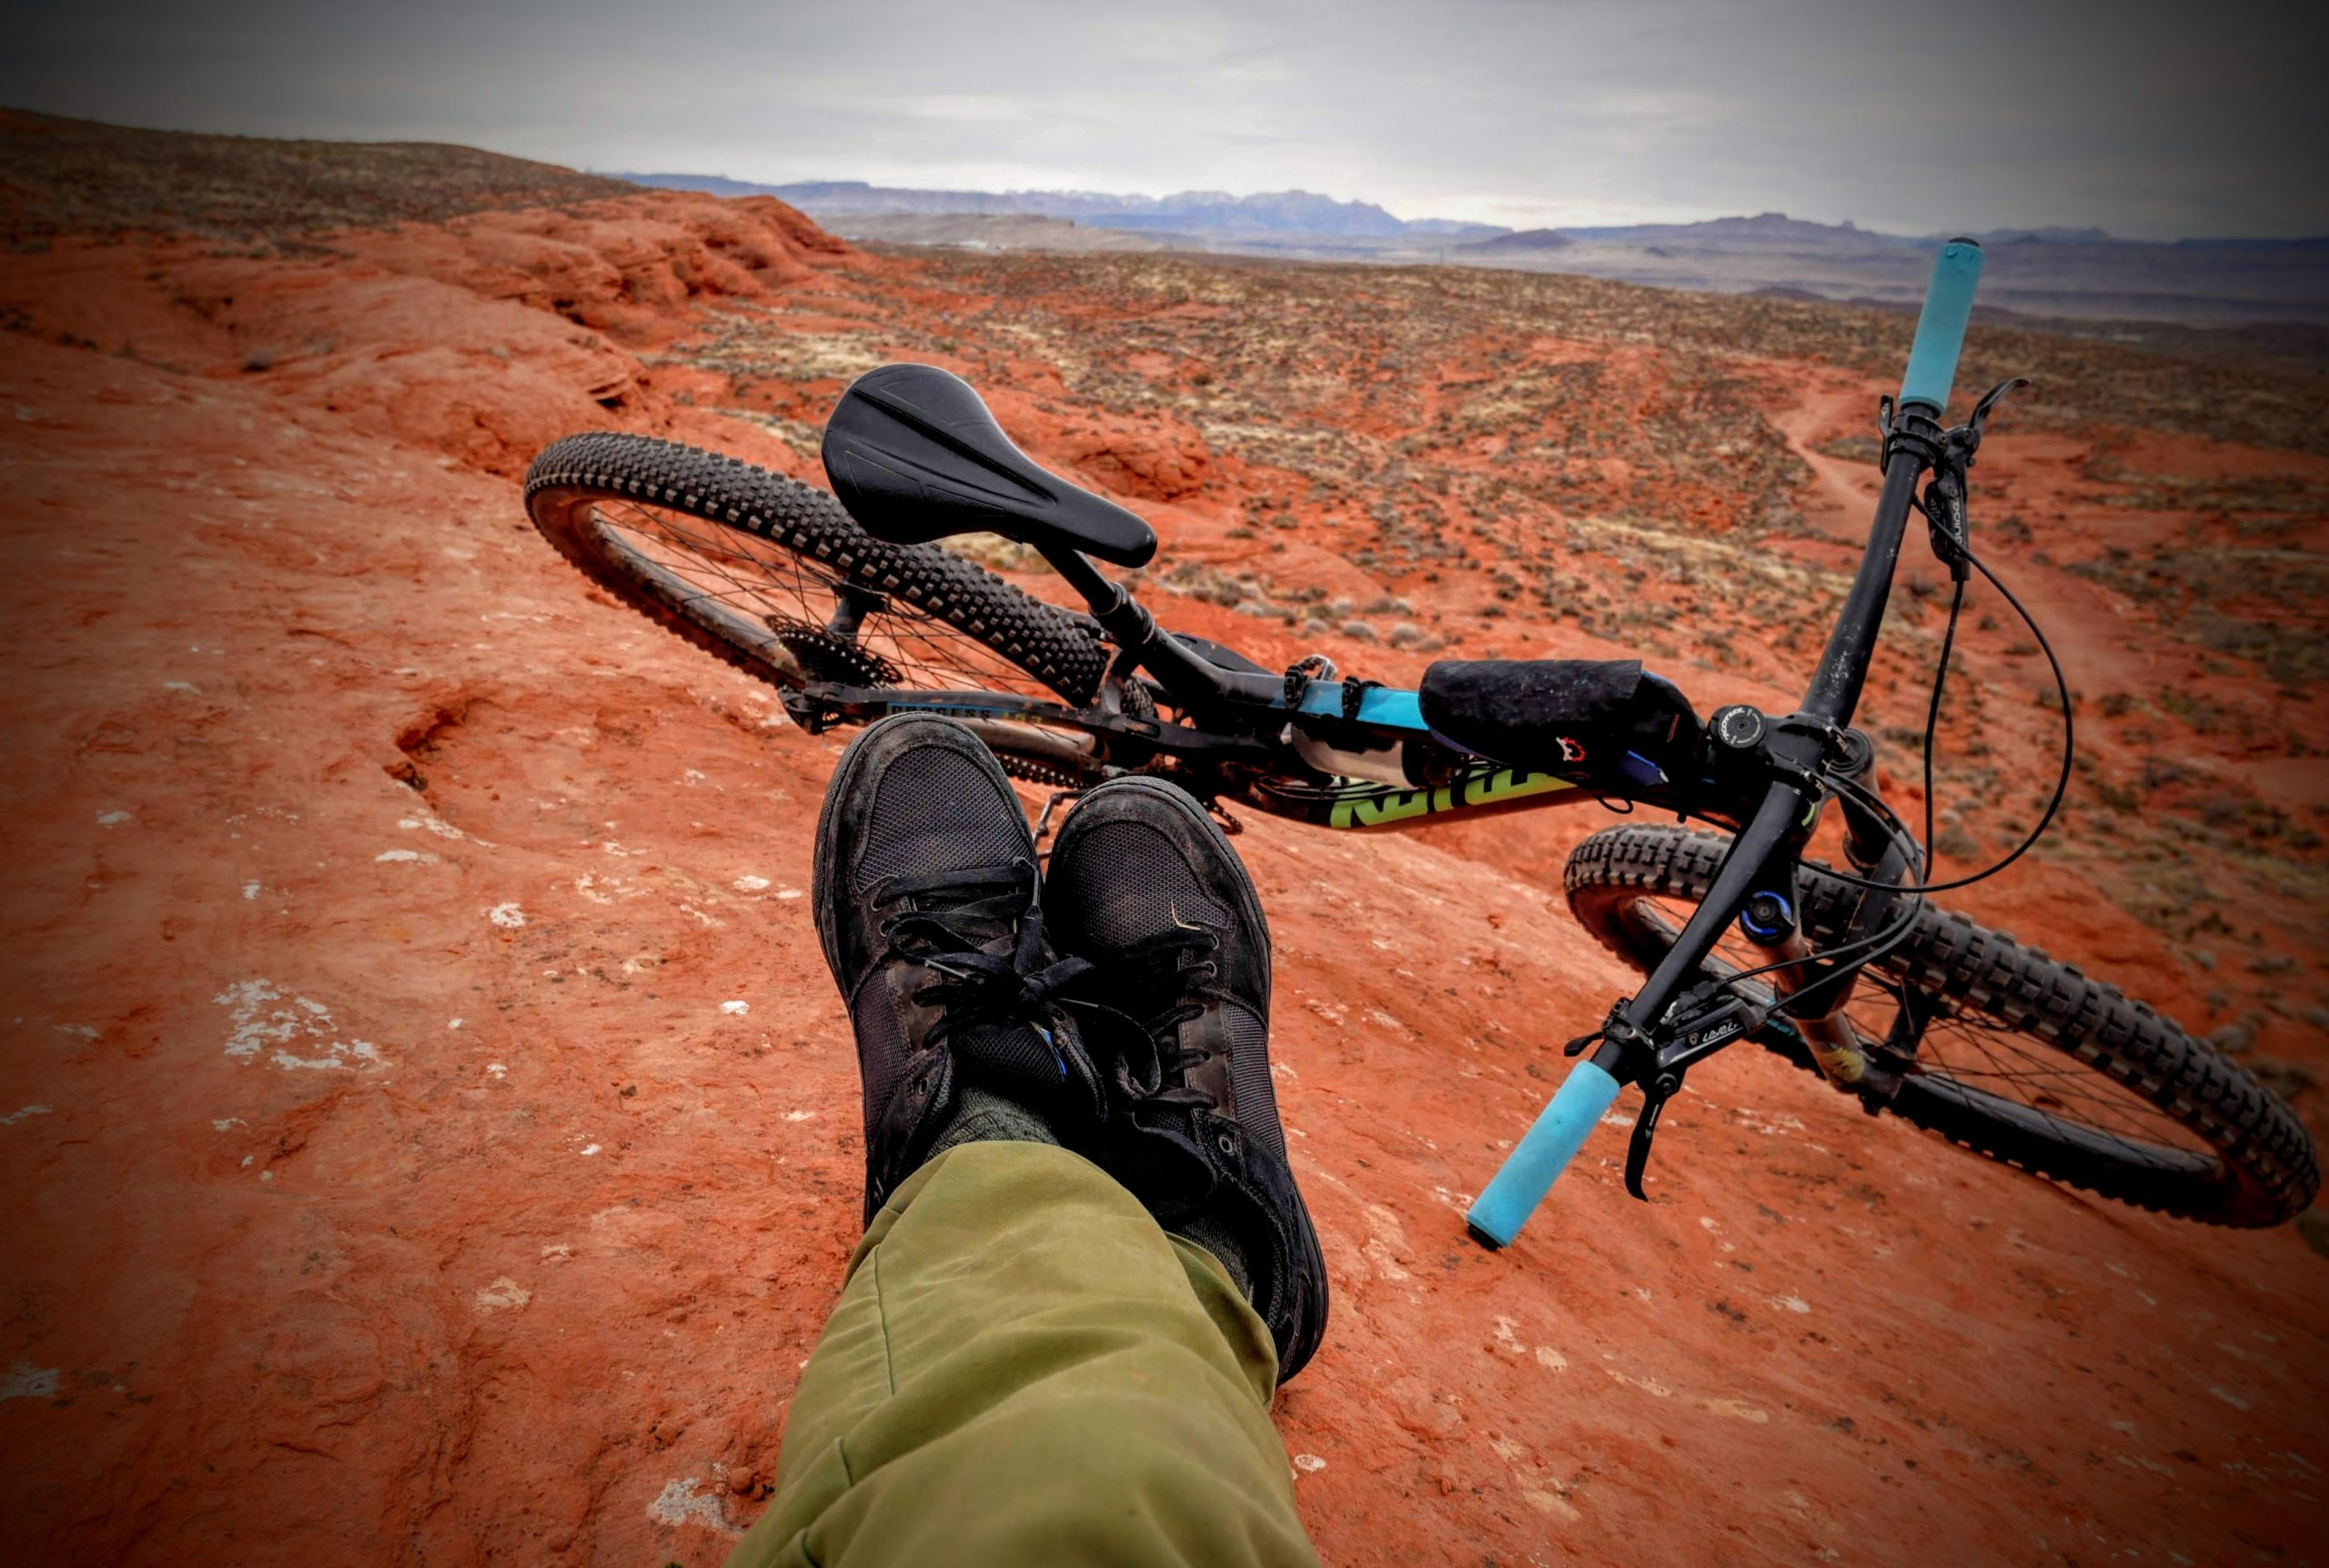 Managing Risk: No Full Face, No Knee Pads, In The Backcountry